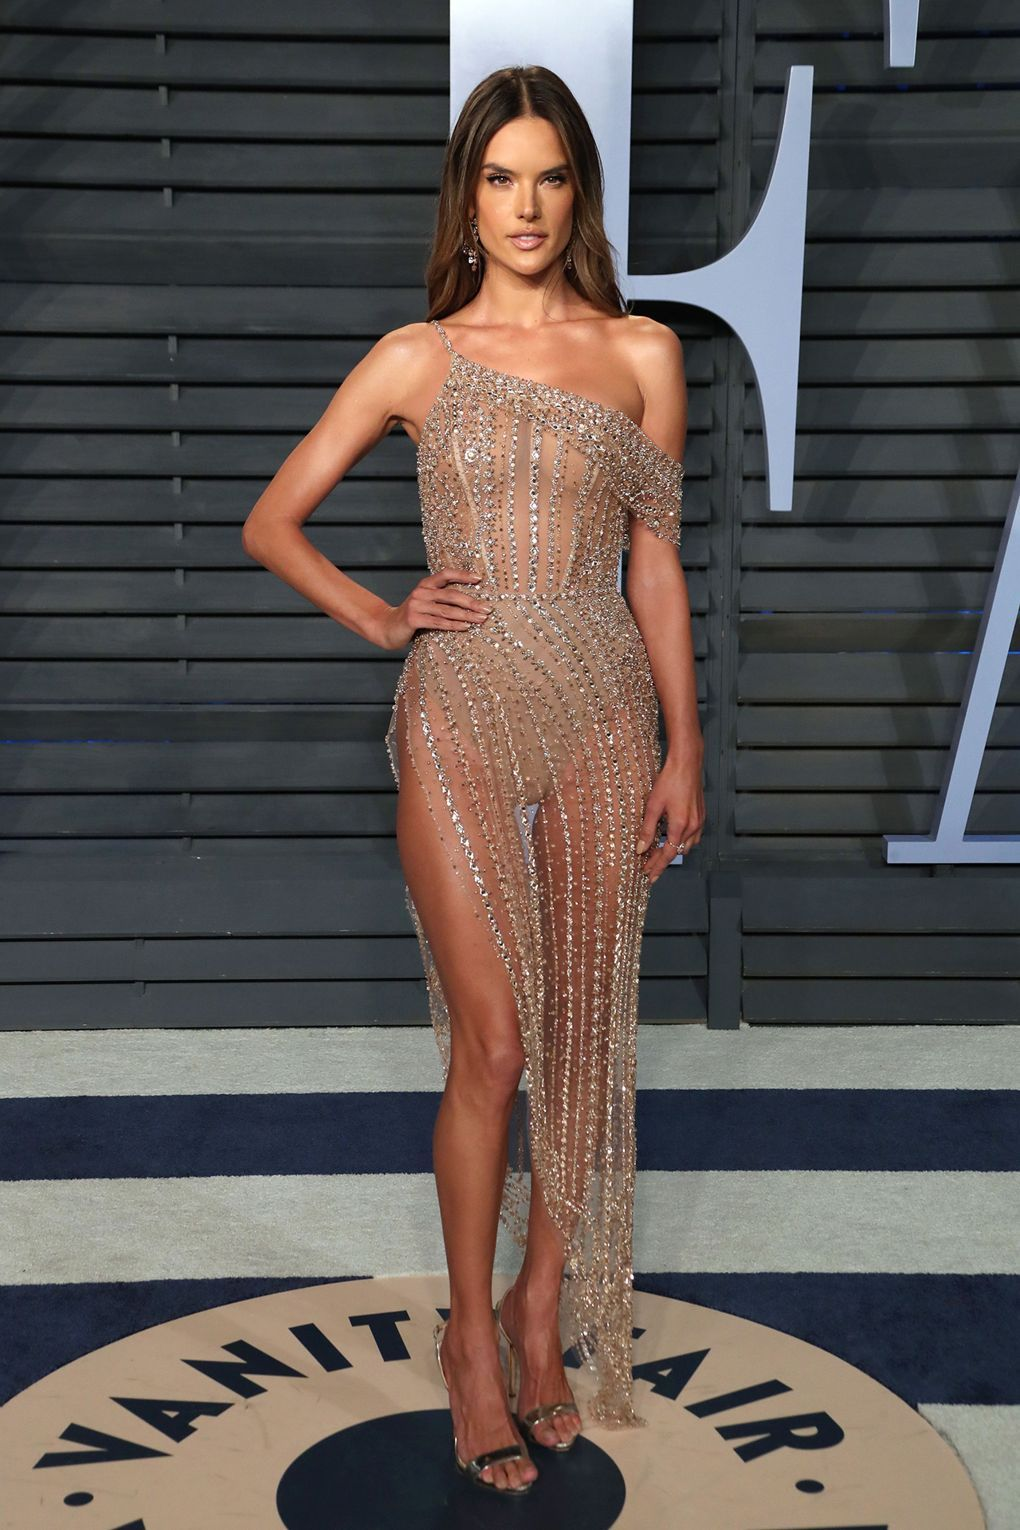 e3df8f412a Alessandra Ambrosio attends the 2018 Vanity Fair Oscar Party in Bervely  Hills